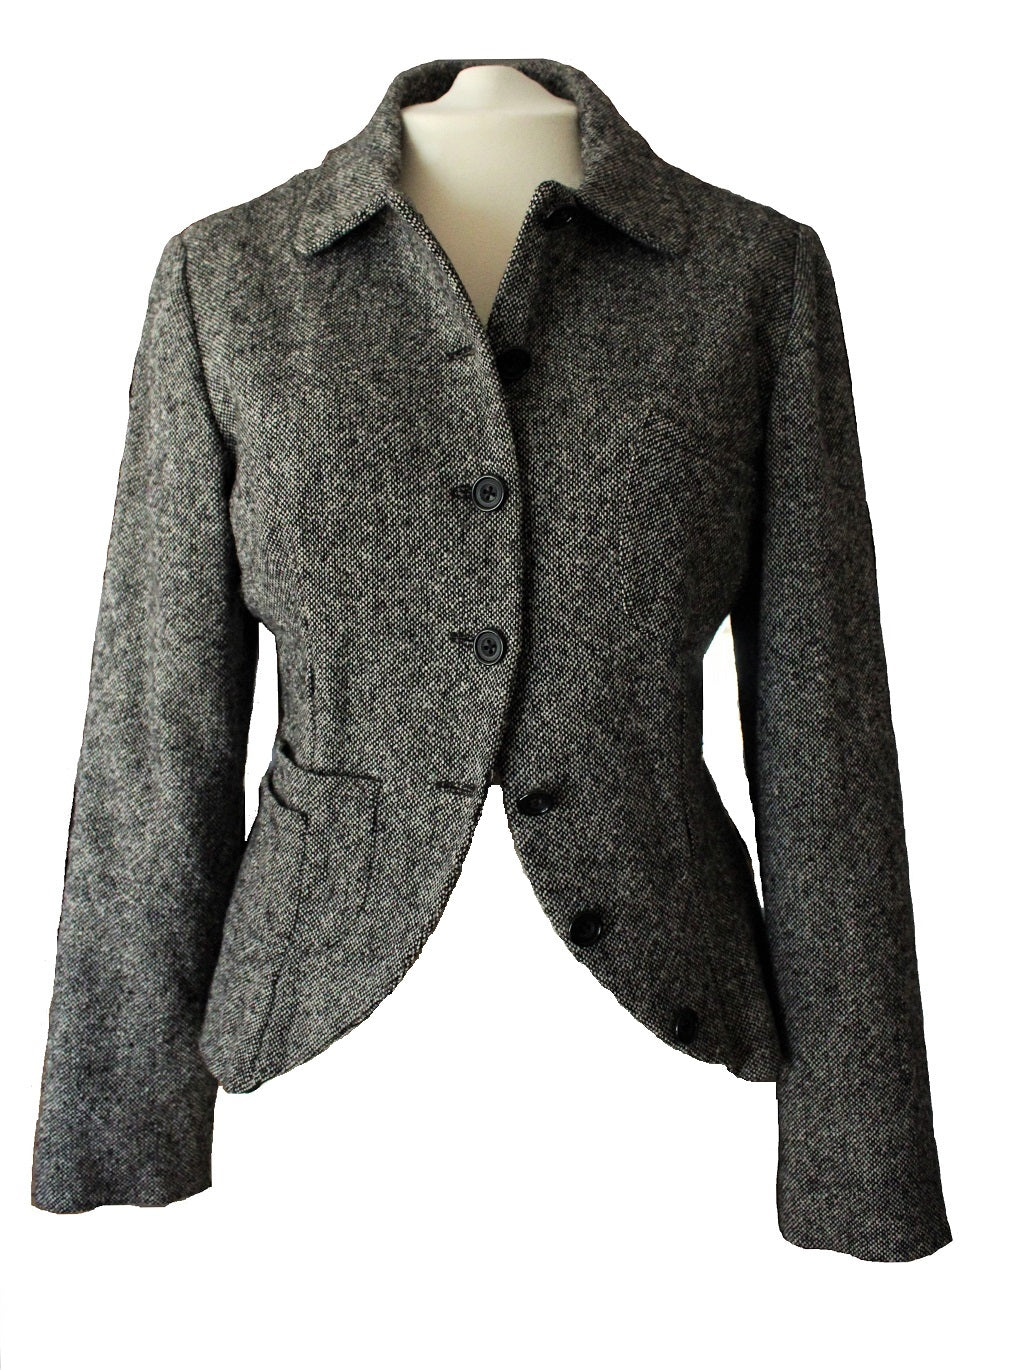 Oliver - wool tailored jacket